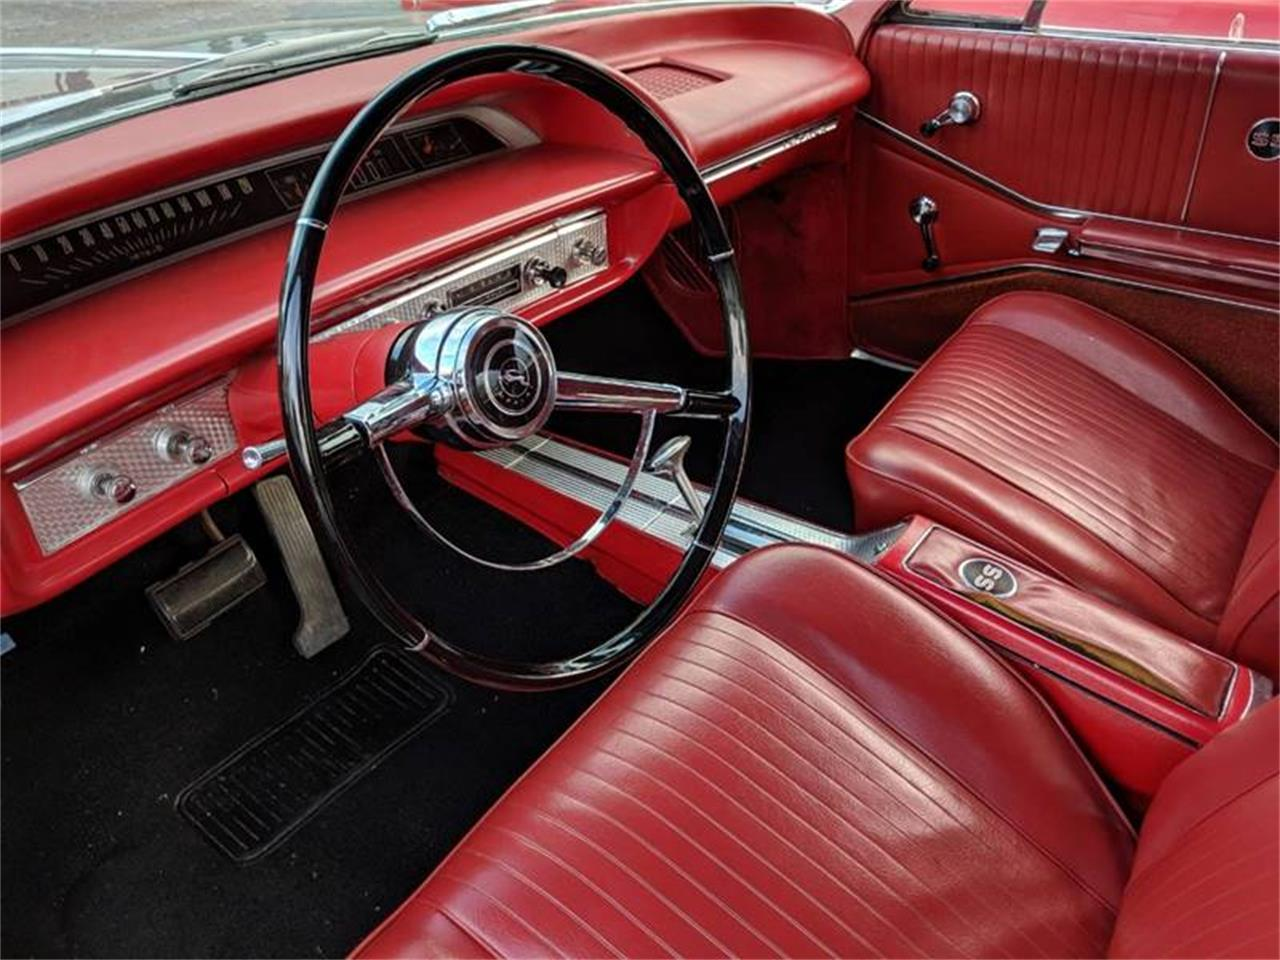 Large Picture of '64 Chevrolet Impala located in St. Charles Illinois - $19,900.00 - QY7L